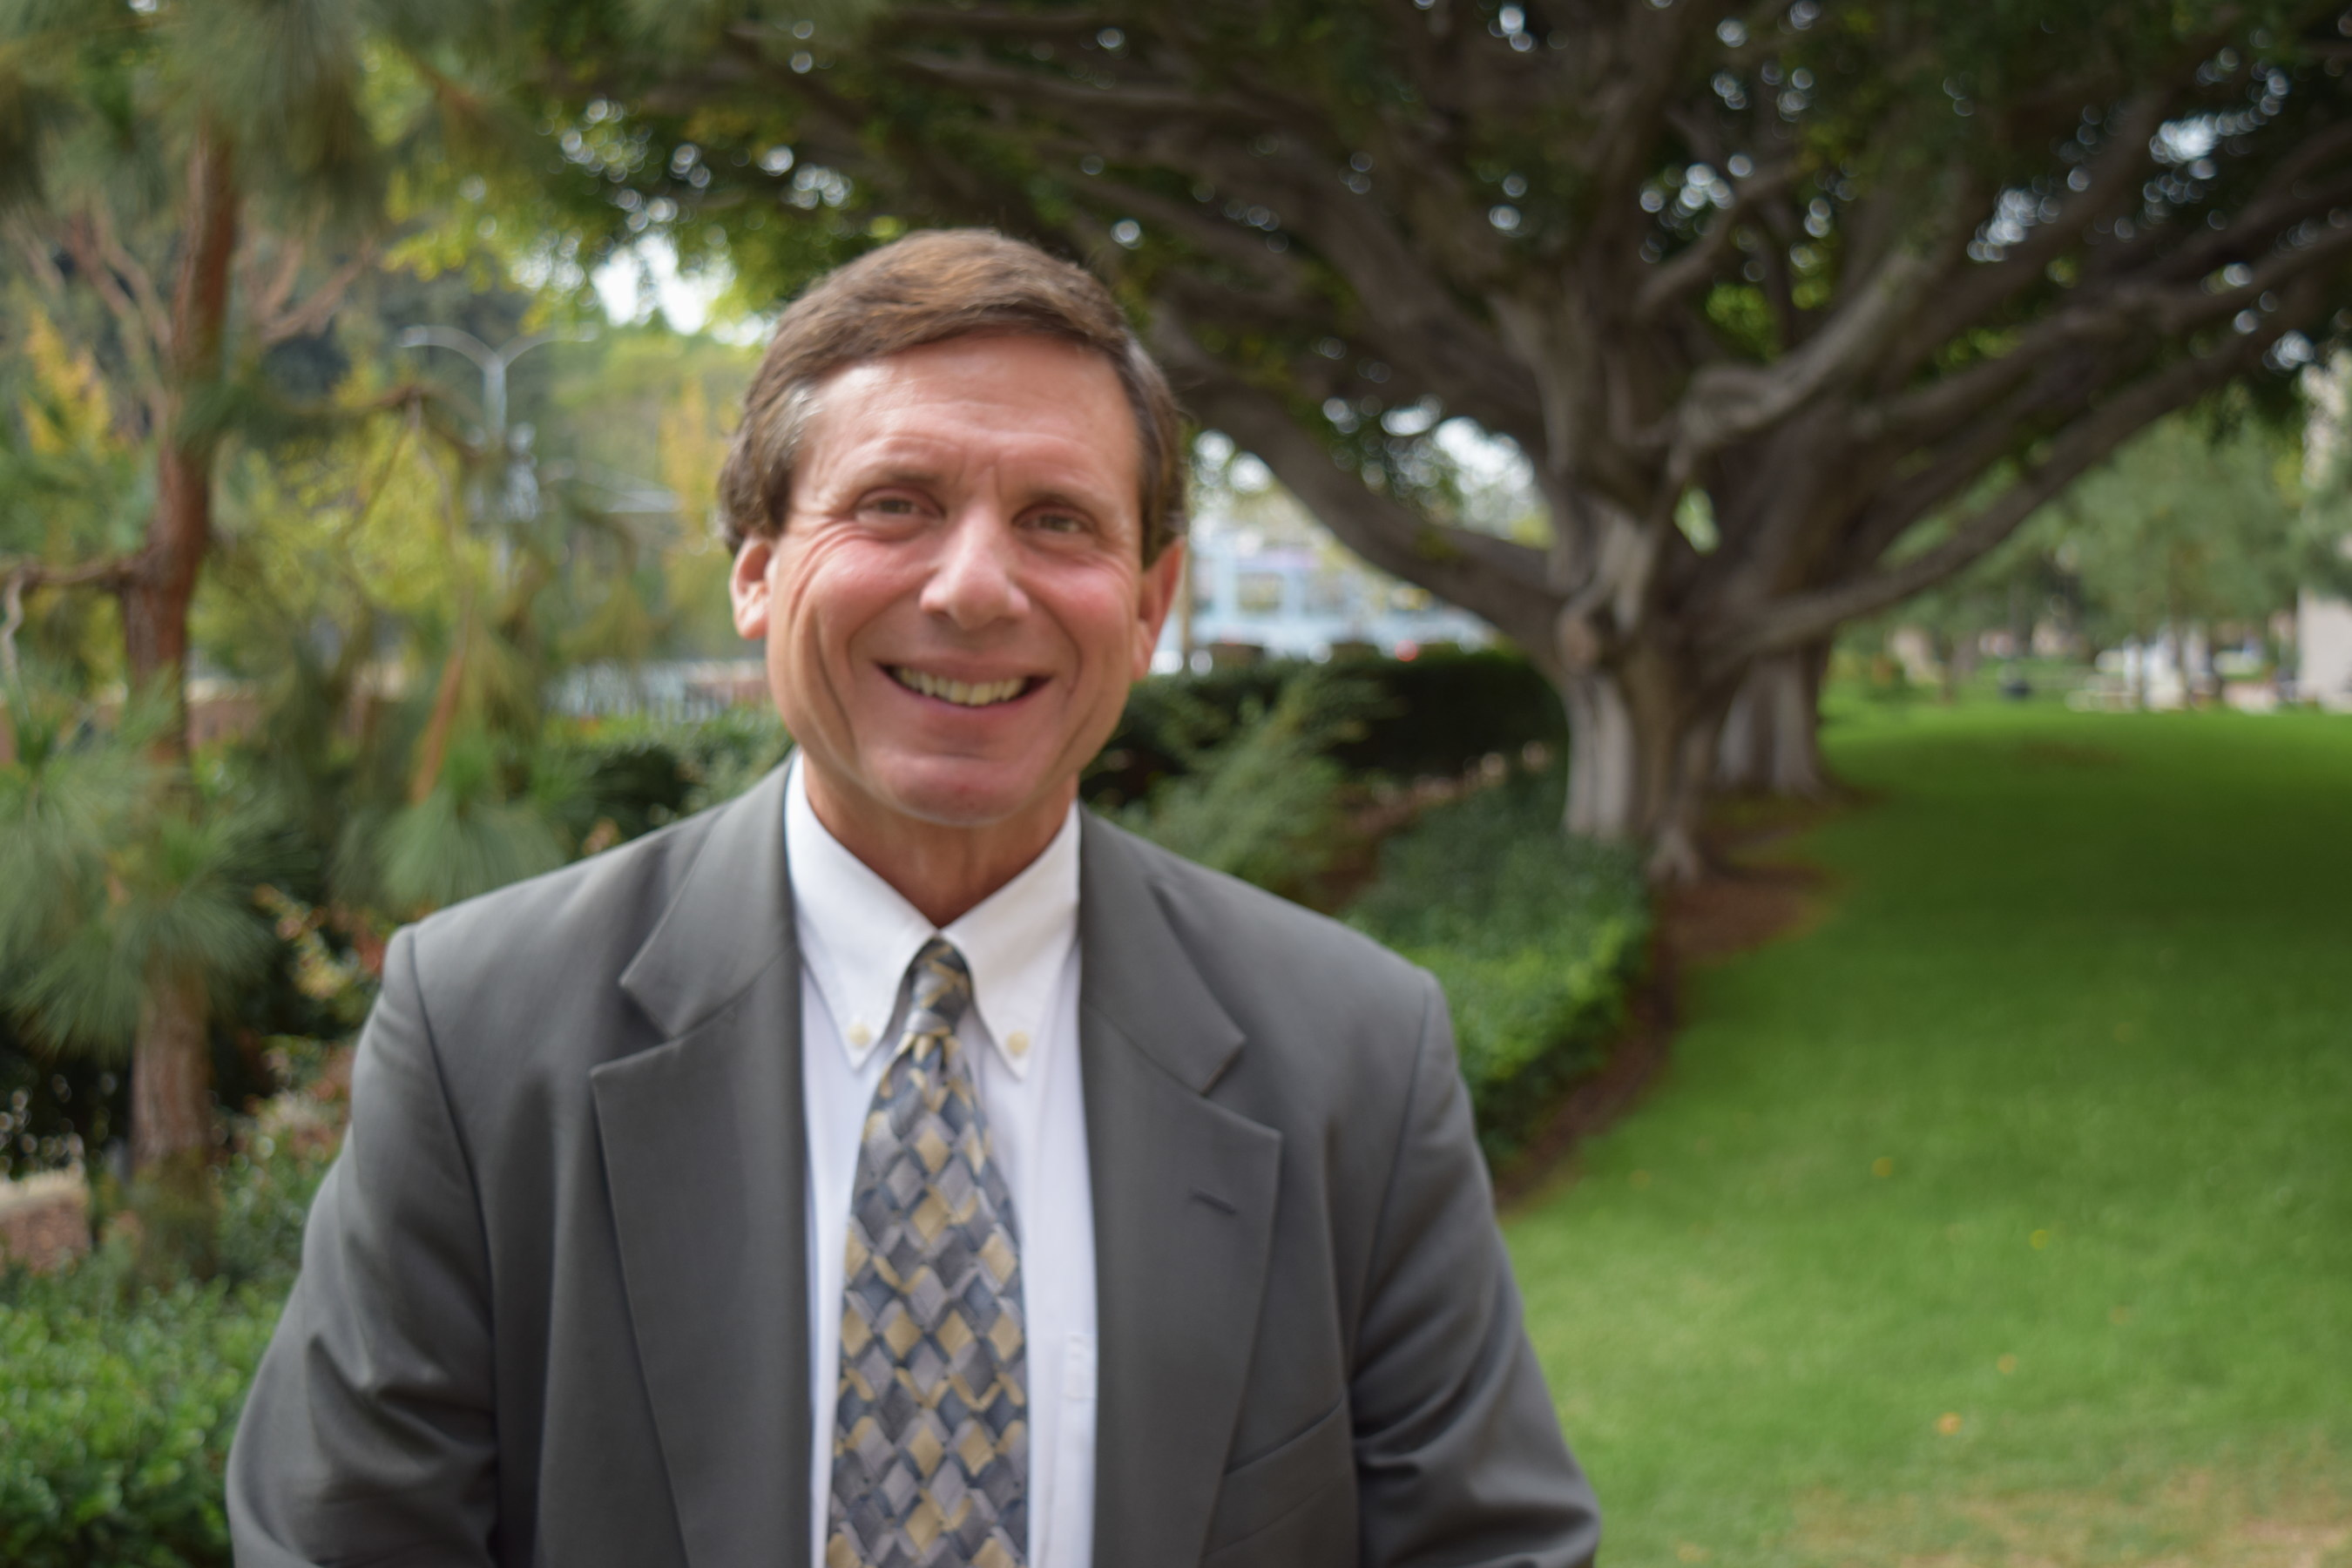 Brian Peck is the director of USC's Center for Transnational Law and Business